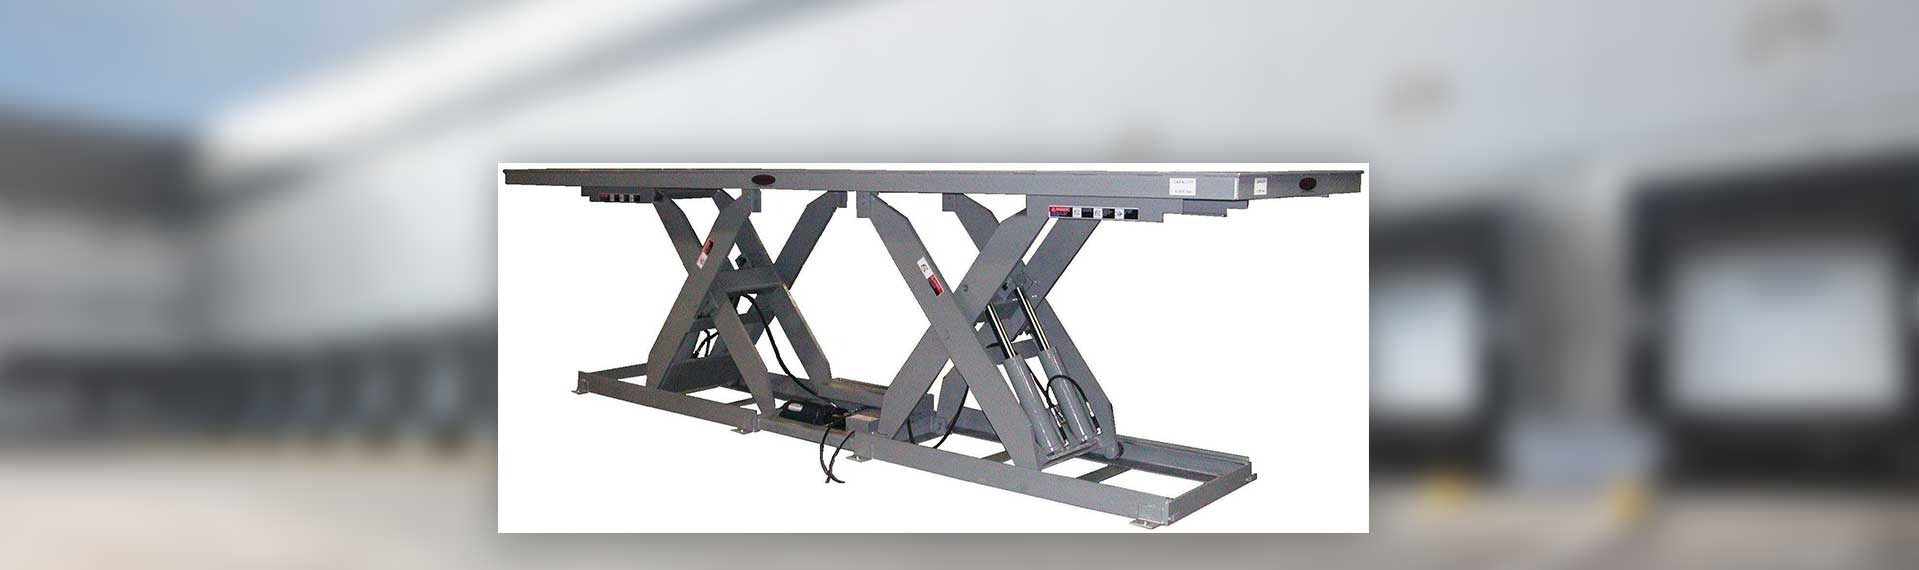 YARD-RAMP-SITE lift table double long